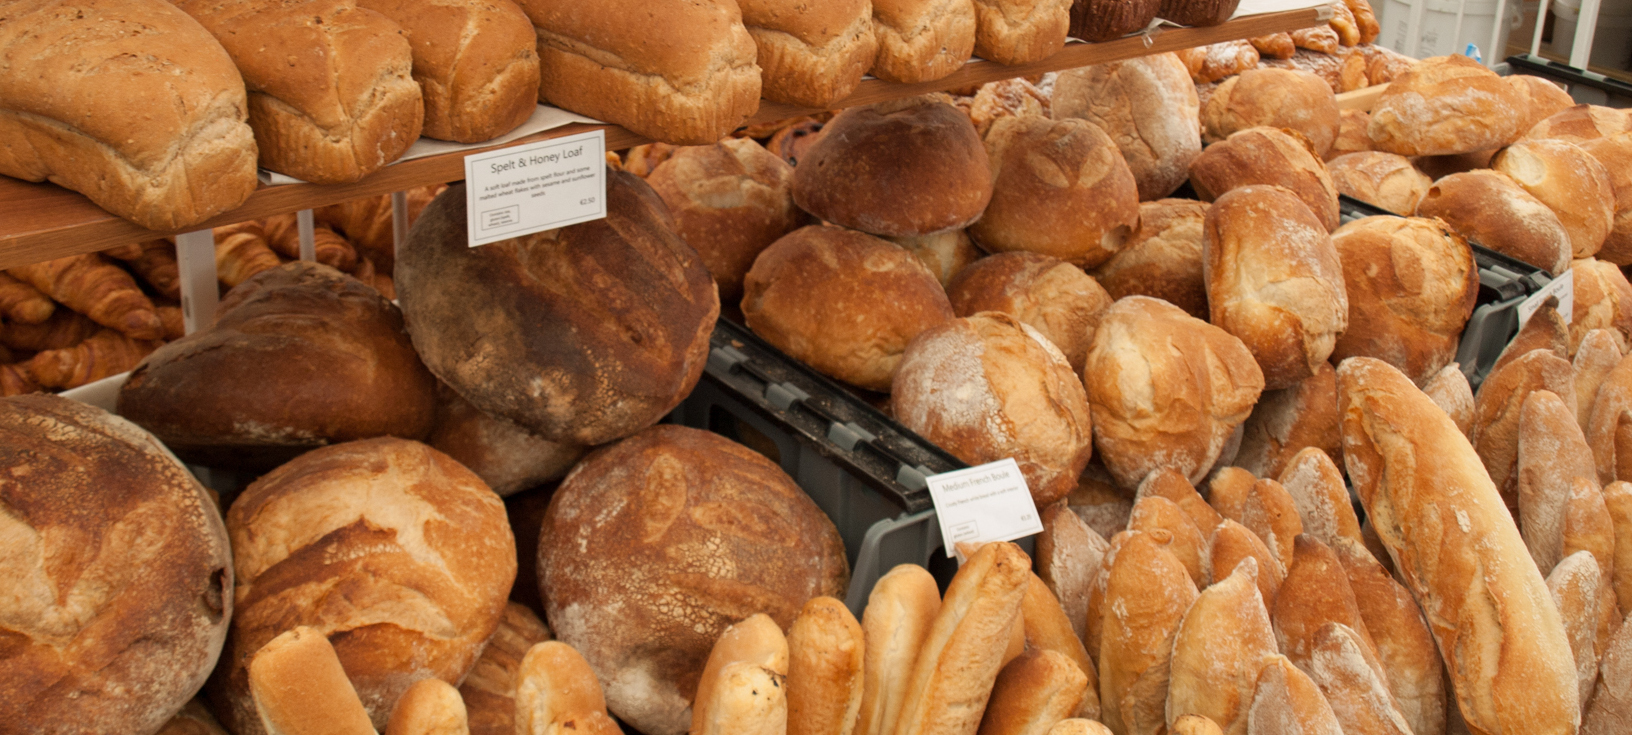 Fresh Bread at the Milk Market in Limerick